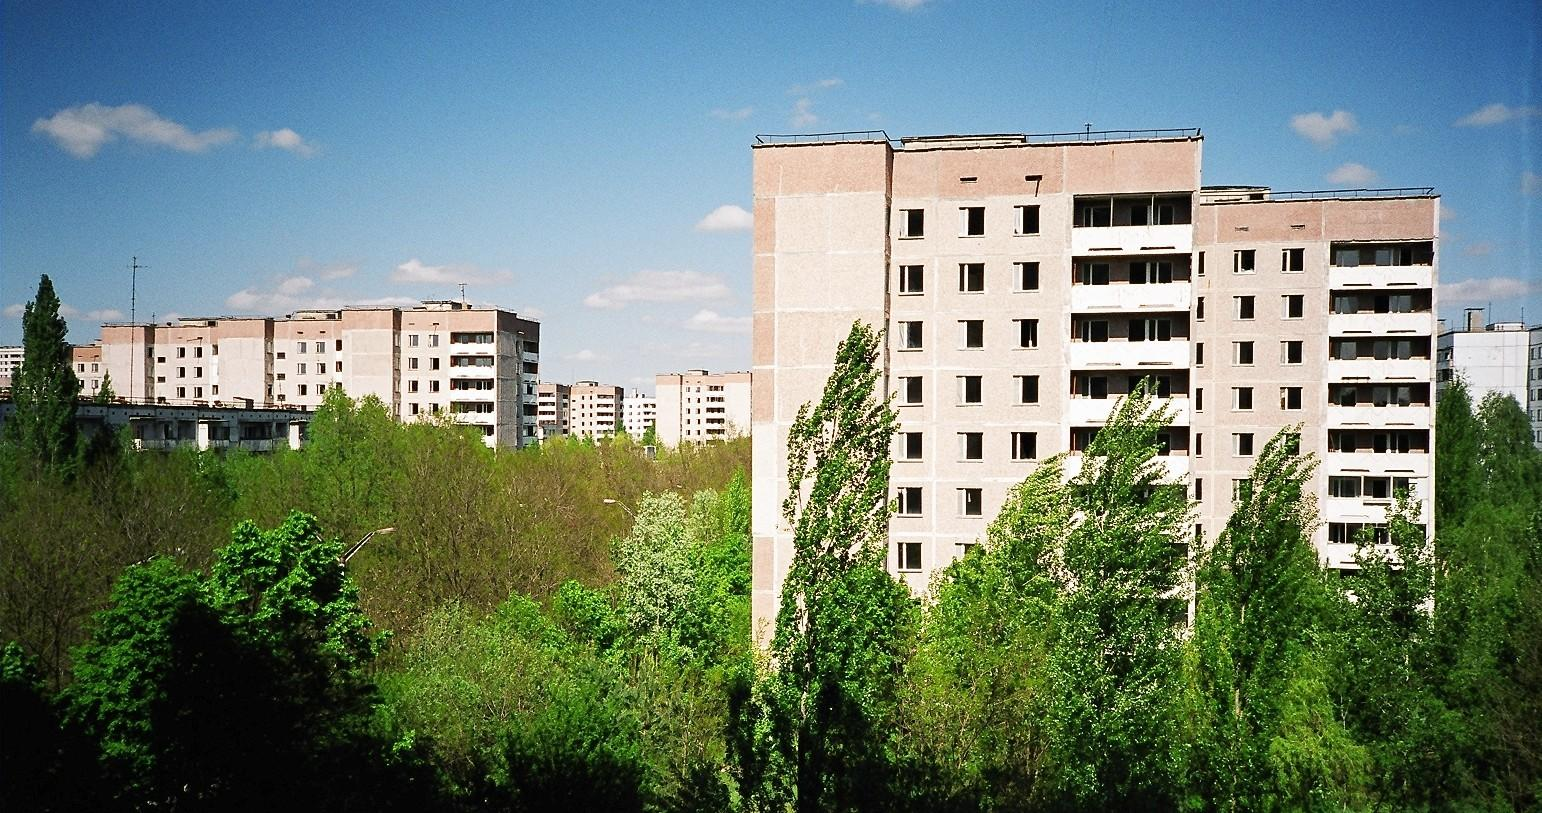 view fom an apartment showing a residential area o rance ian